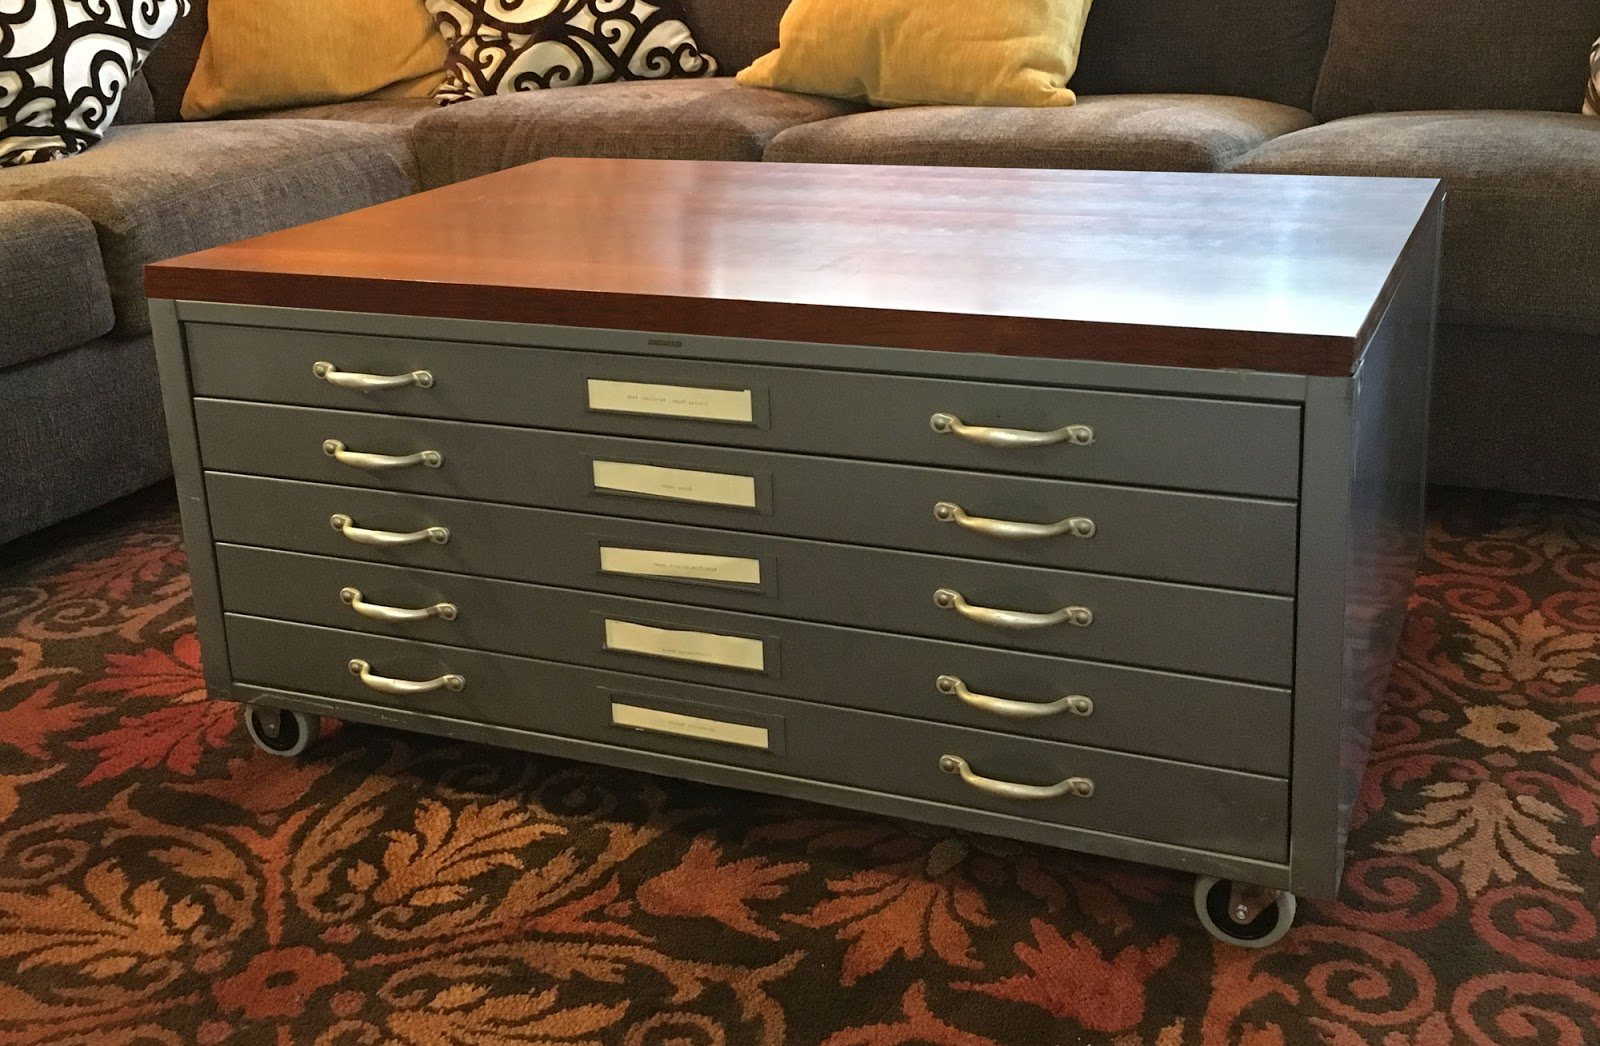 vintage potery flat file coffee table